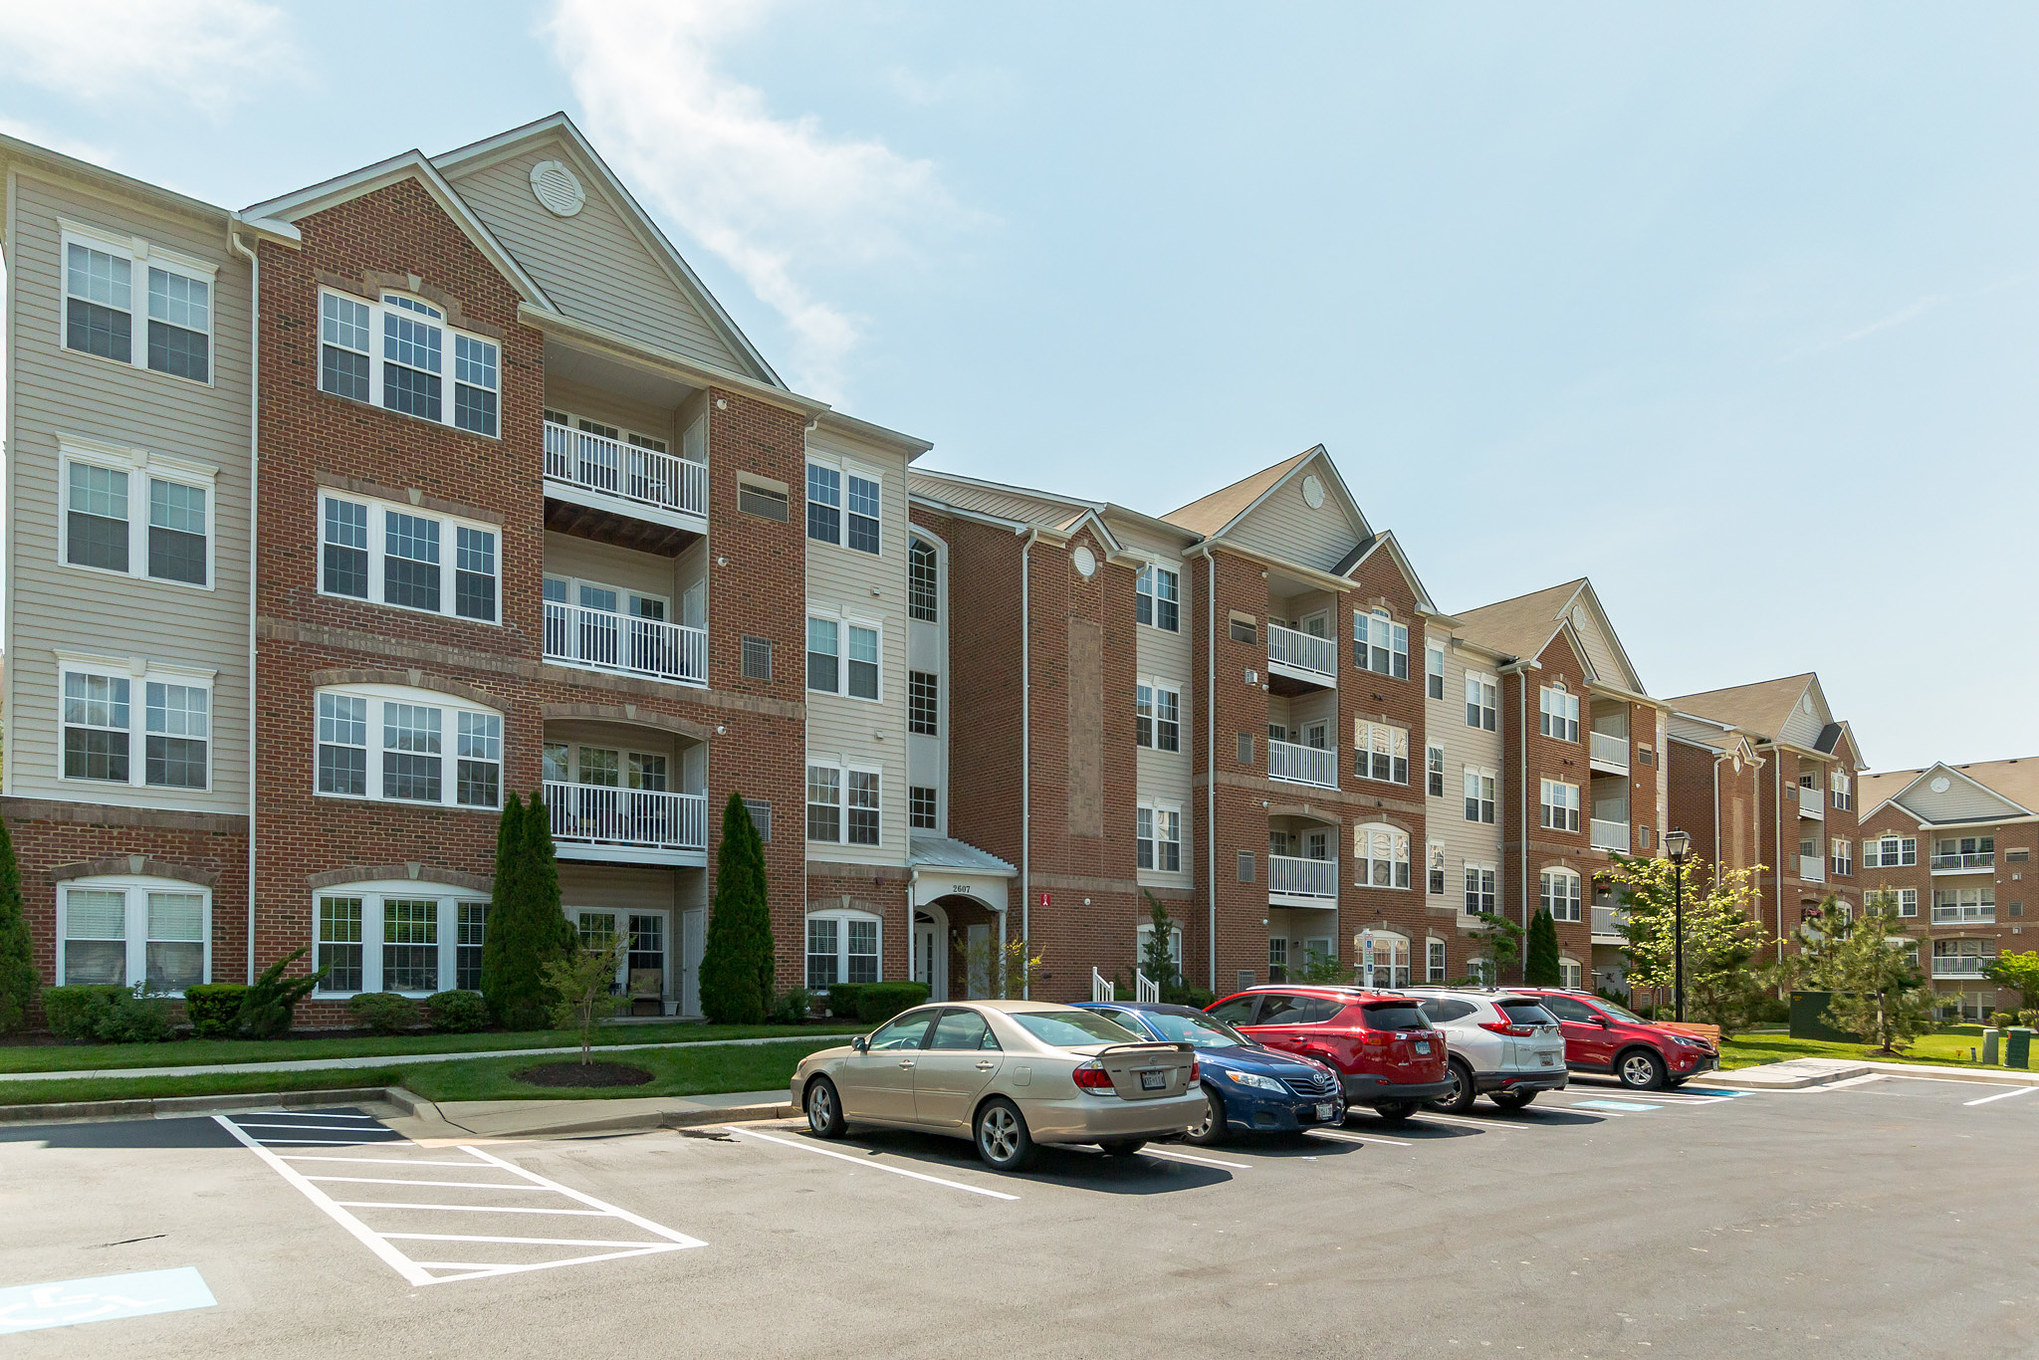 Odenton condo for sale in the Eden Brook subdivision